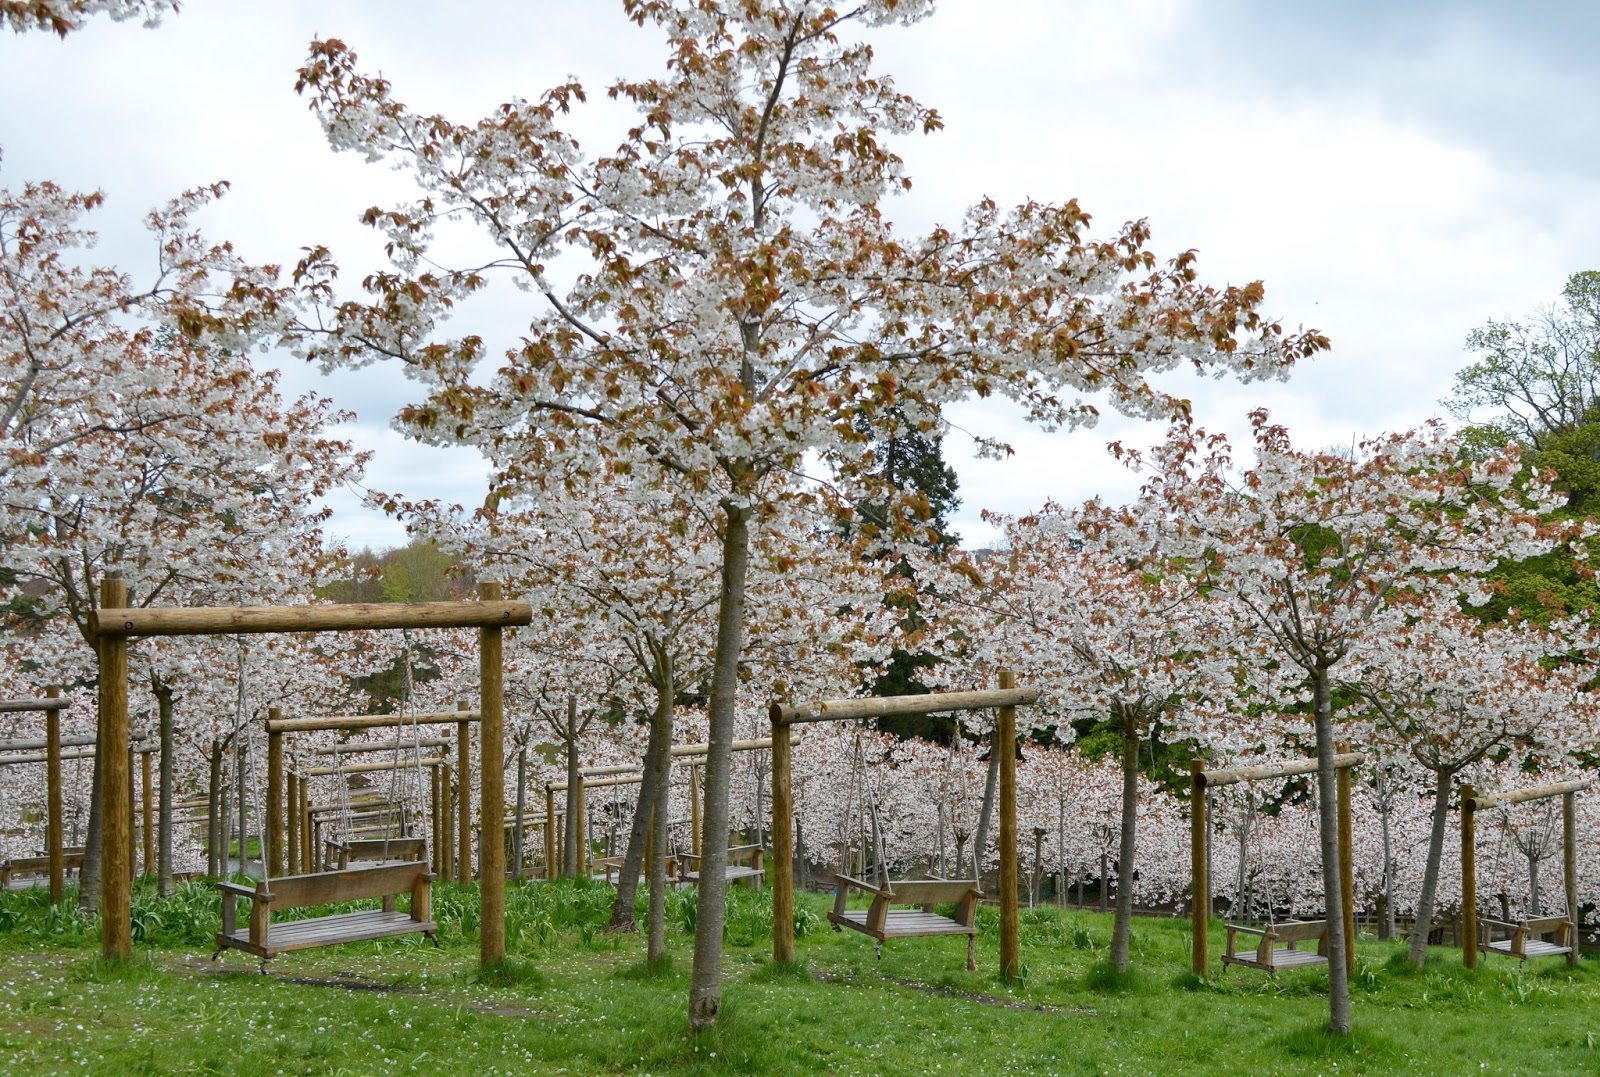 The Cherry Blossom Orchard at The Alnwick Garden - empty swings